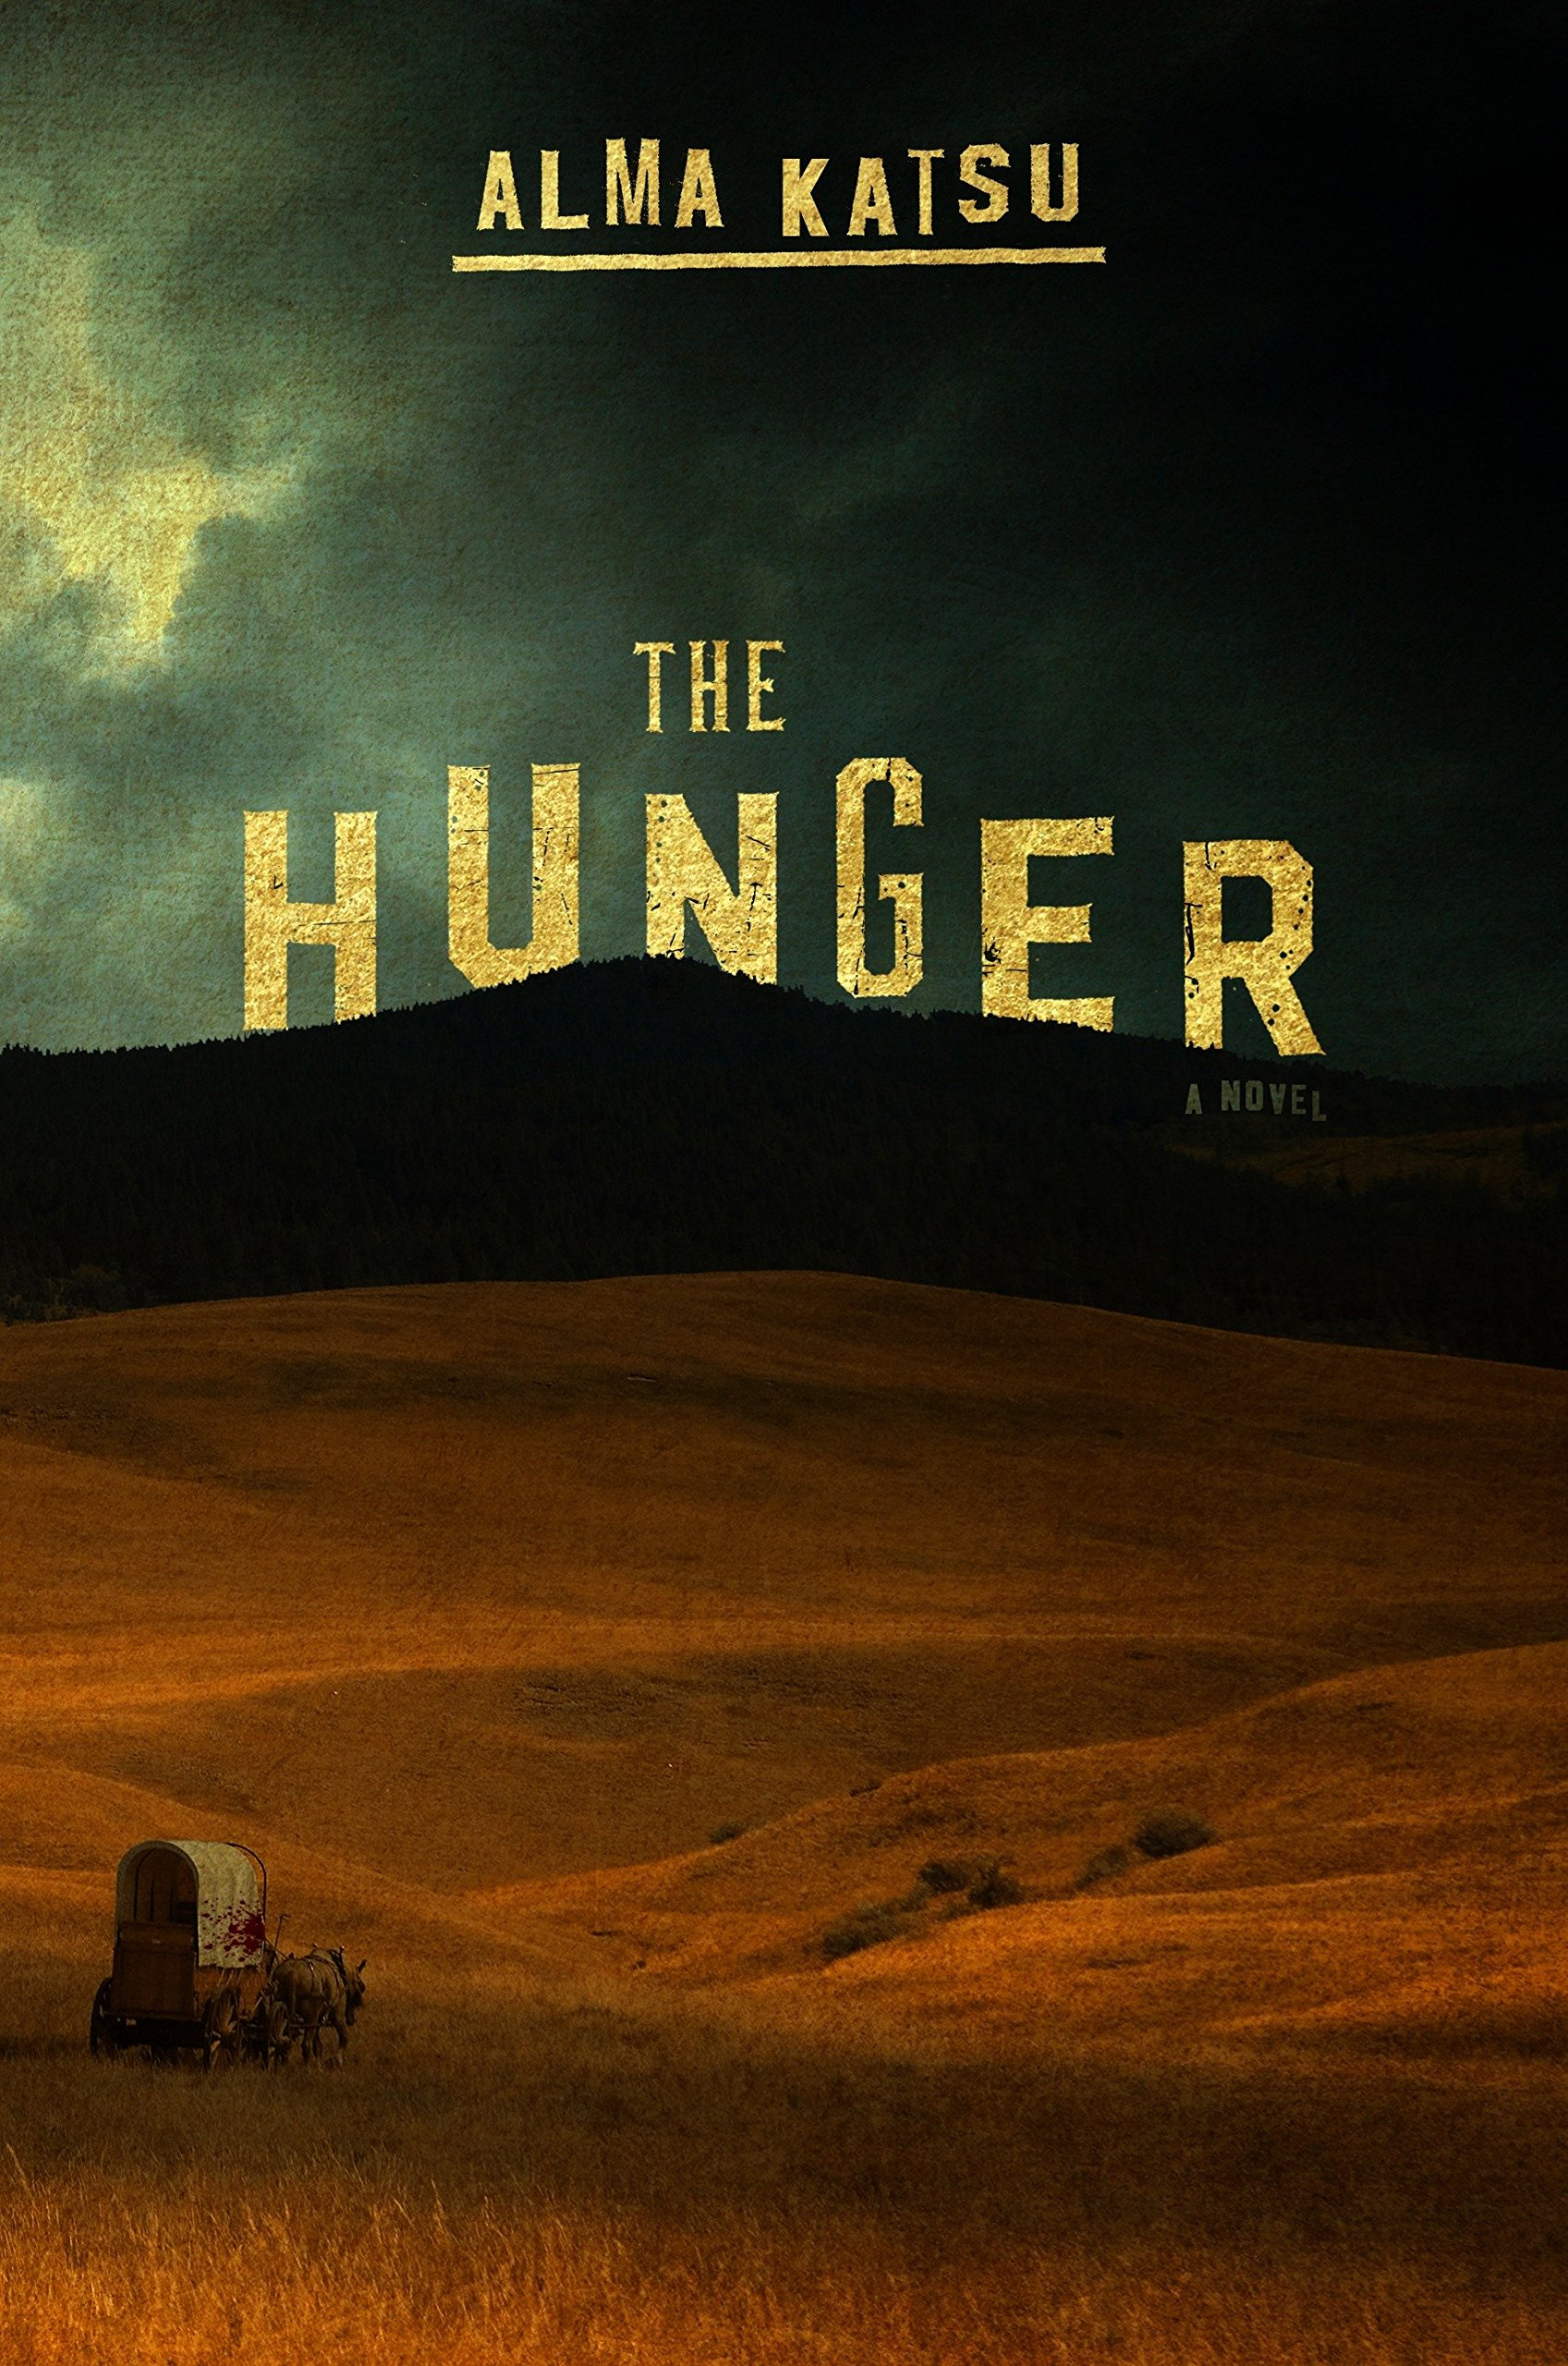 Image result for The Hunger - Alma Katsu